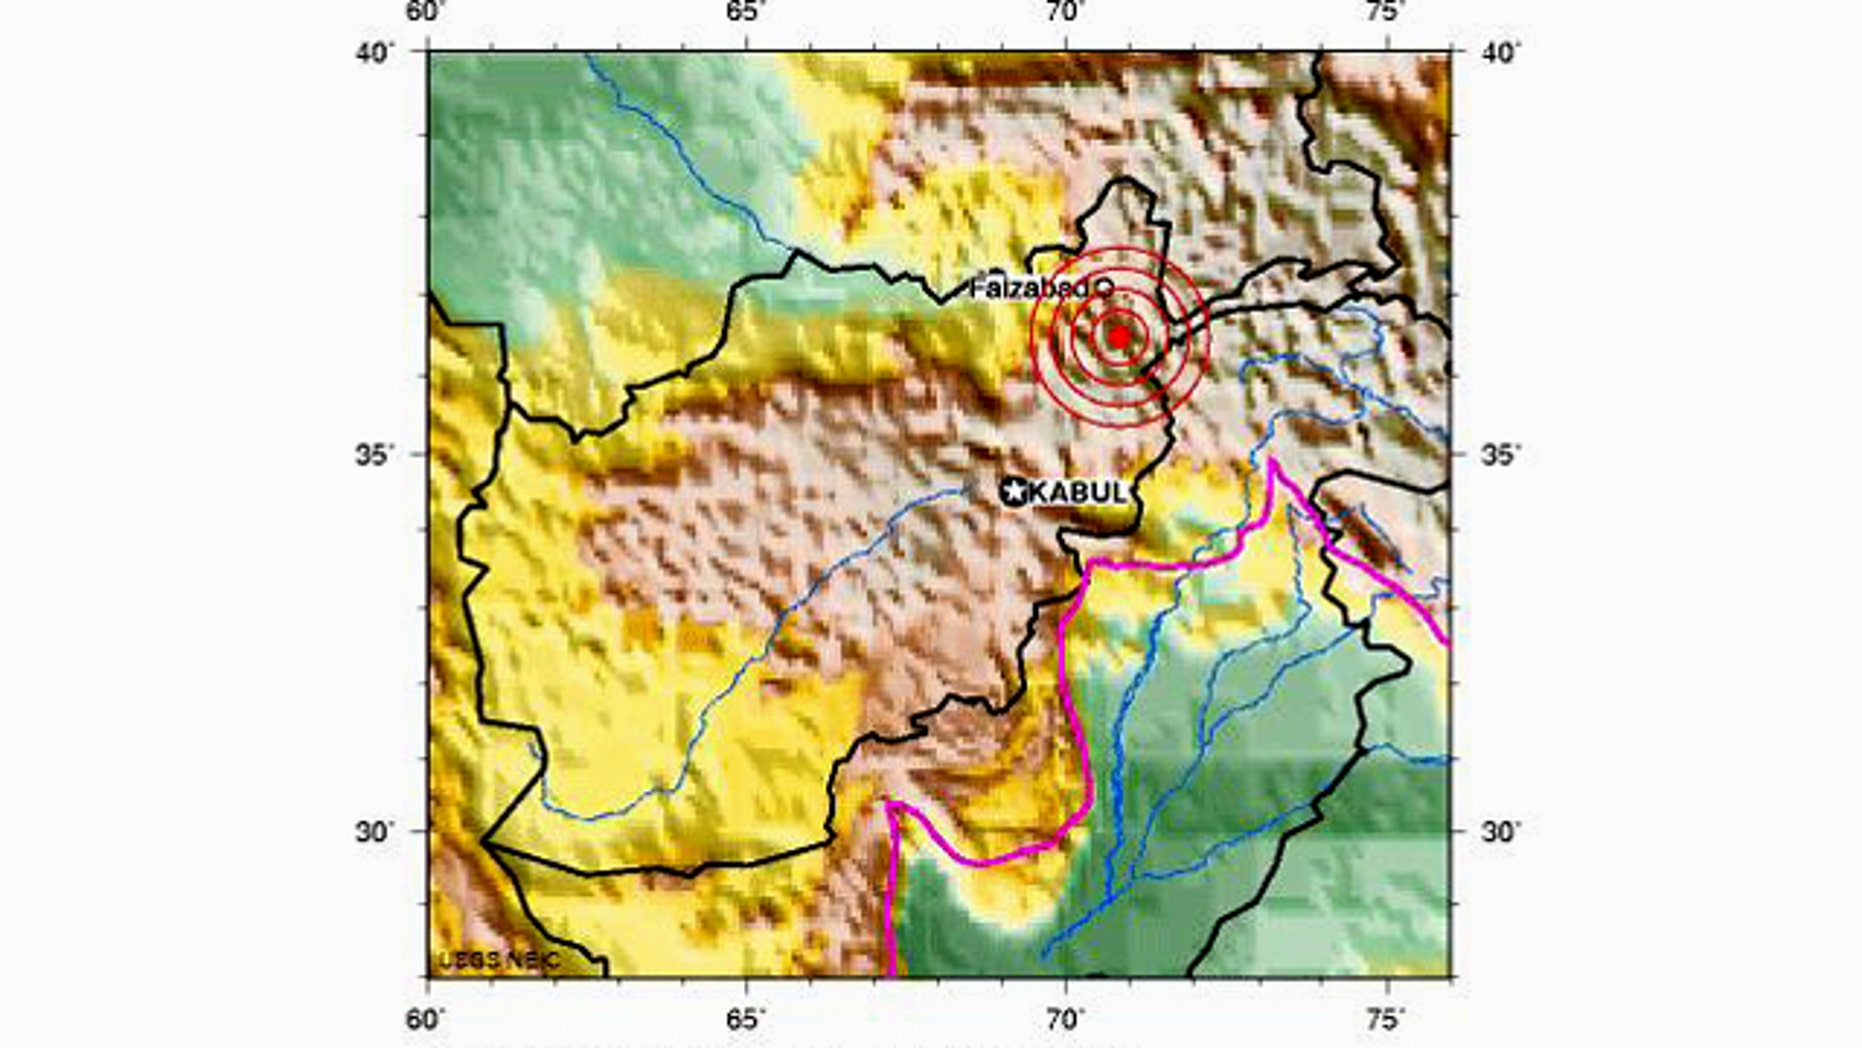 The preliminary earthquake report from the U.S. Geological Survey's National Earthquake Information Center shows the epicenter of the quake, just north of Faizabad in Afghanistan.